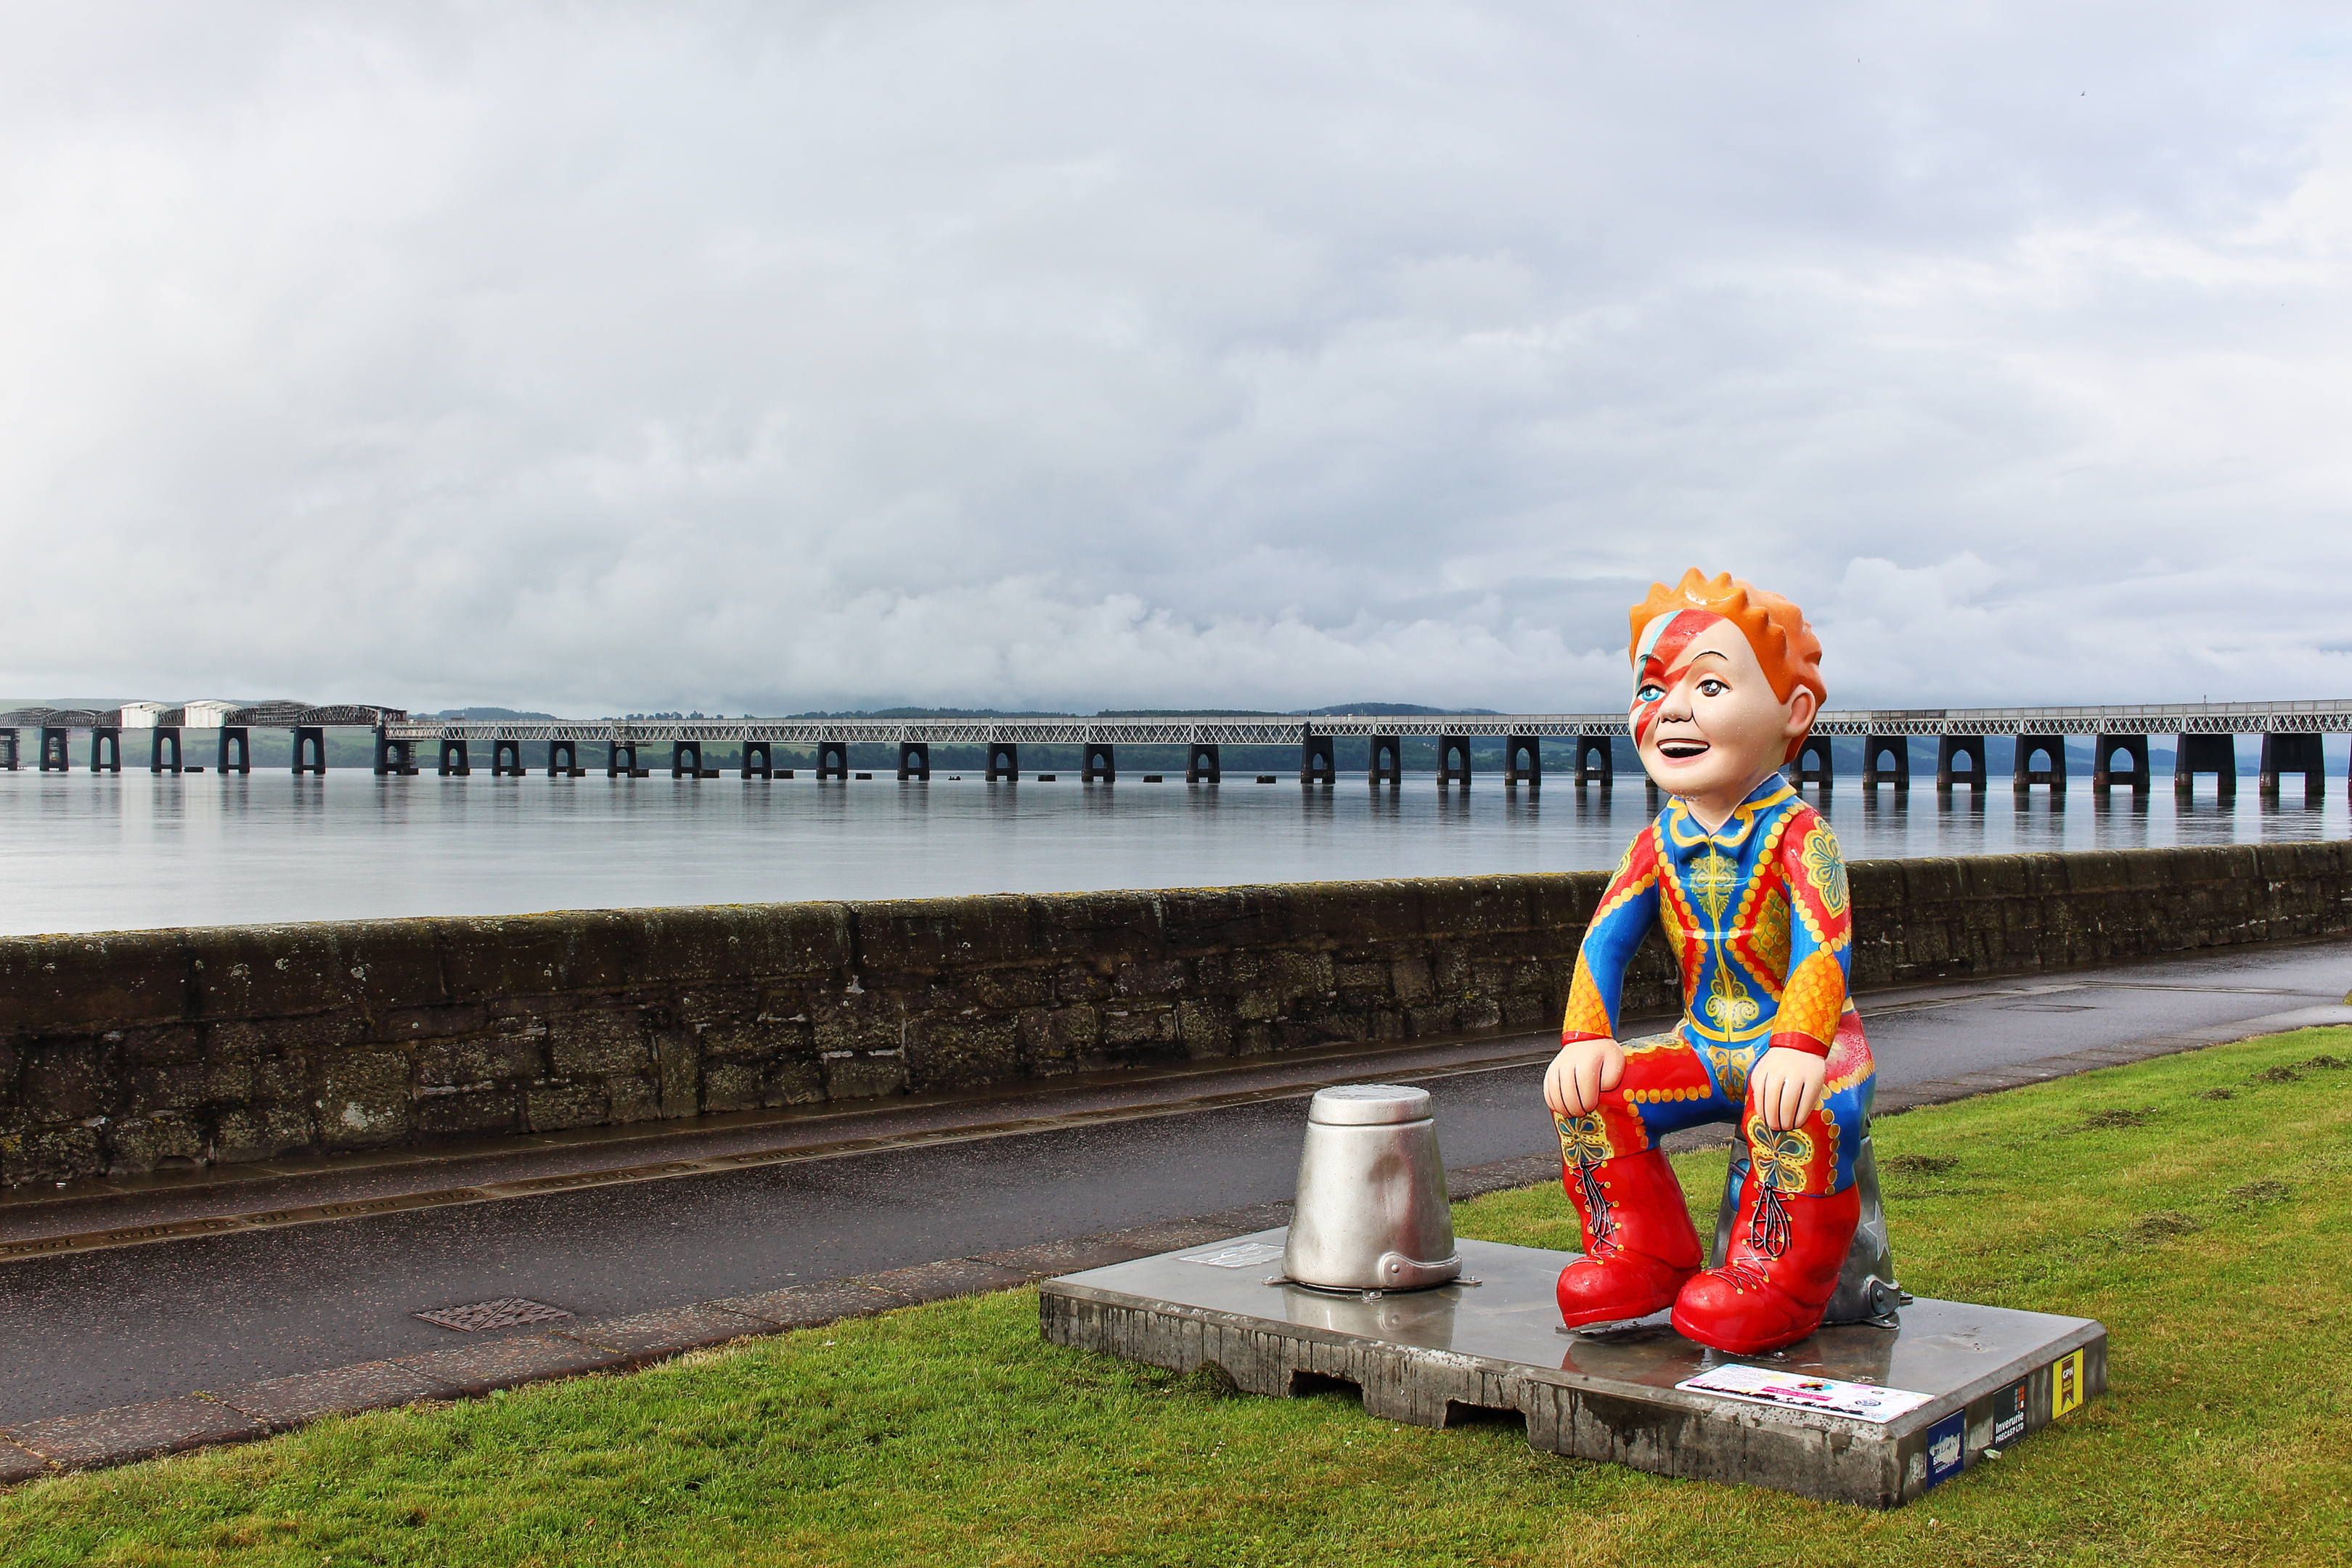 Oor Wullie is taking over Dundee!